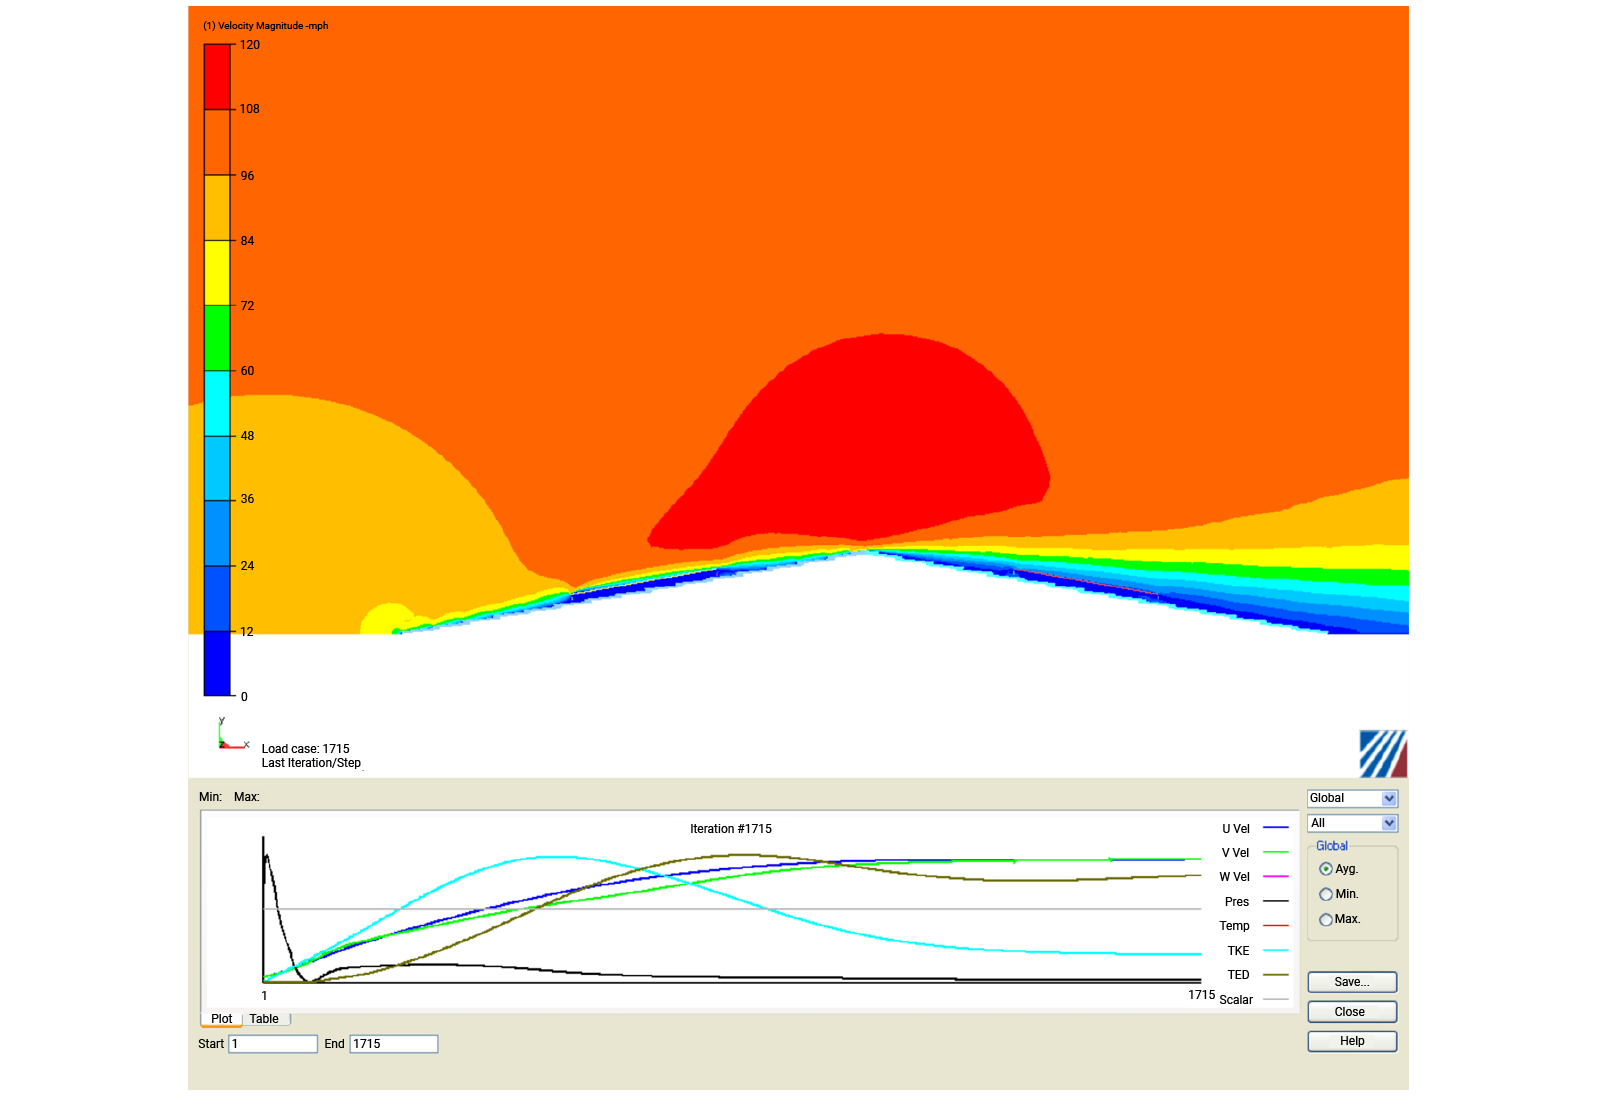 The complete CFD model is shown with the velocity flow patterns over the panel and the eave of the roof - Predictive Engineering CFD Consulting Services